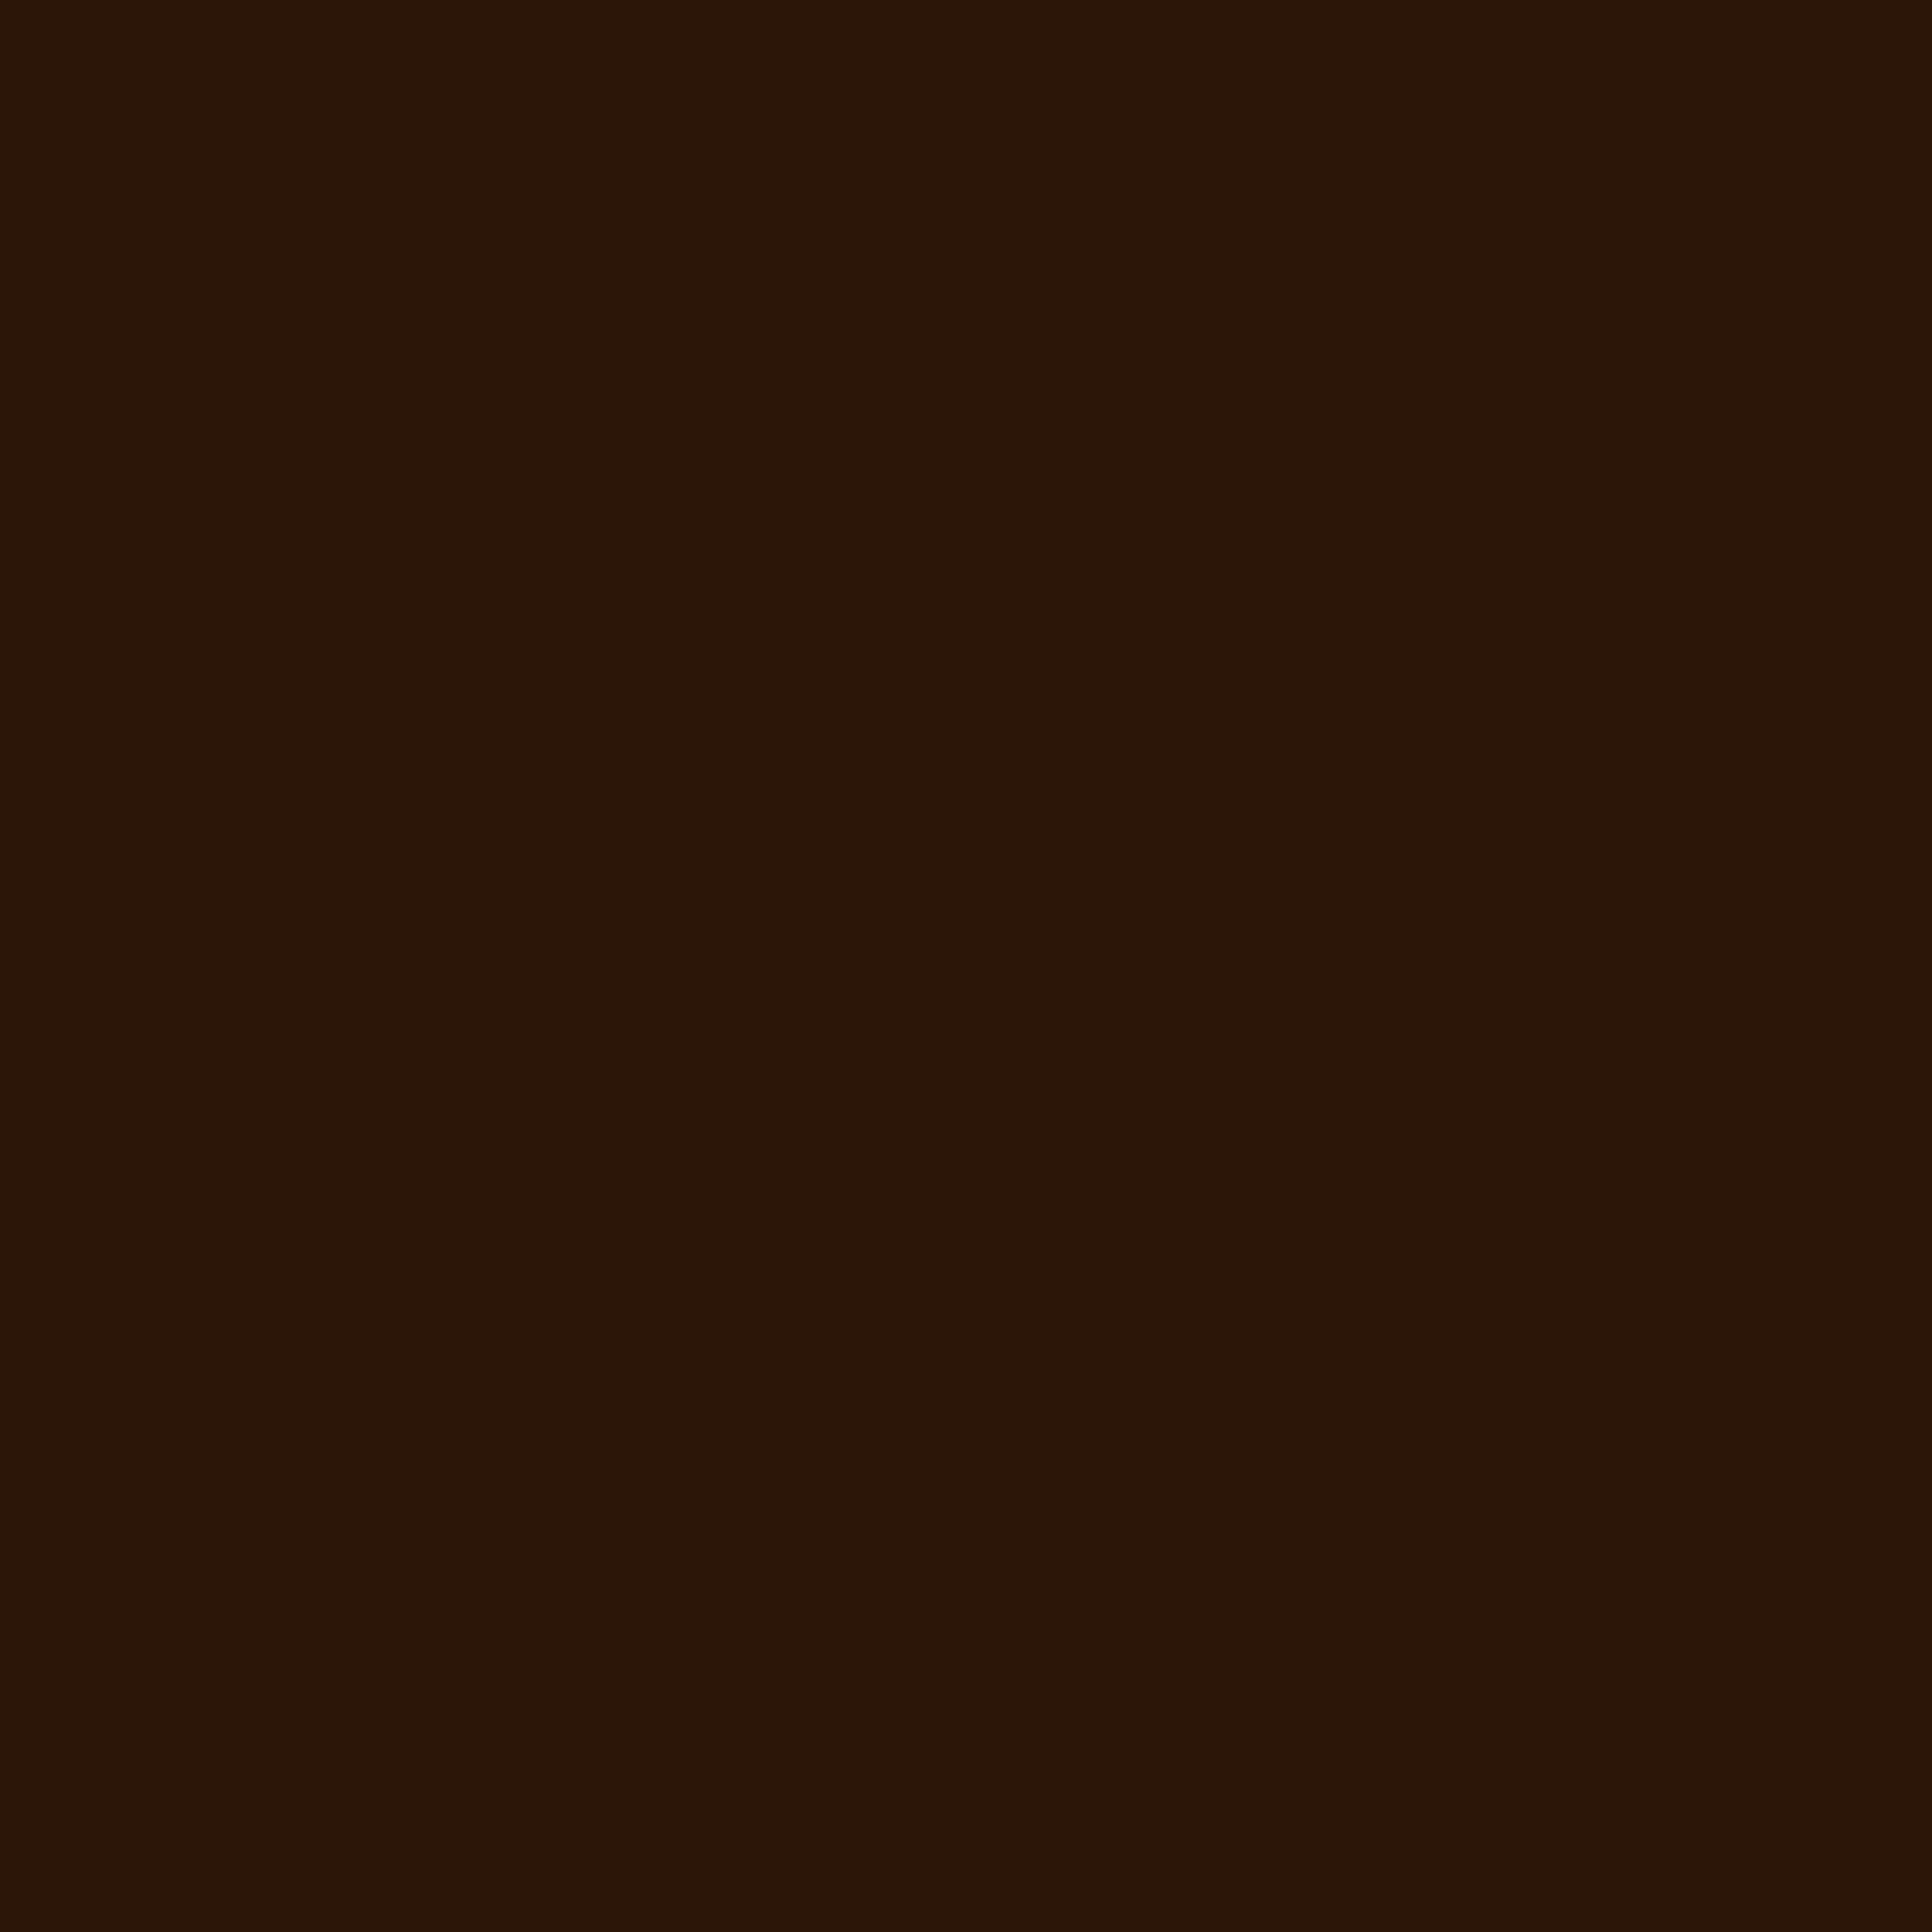 2048x2048 Zinnwaldite Brown Solid Color Background